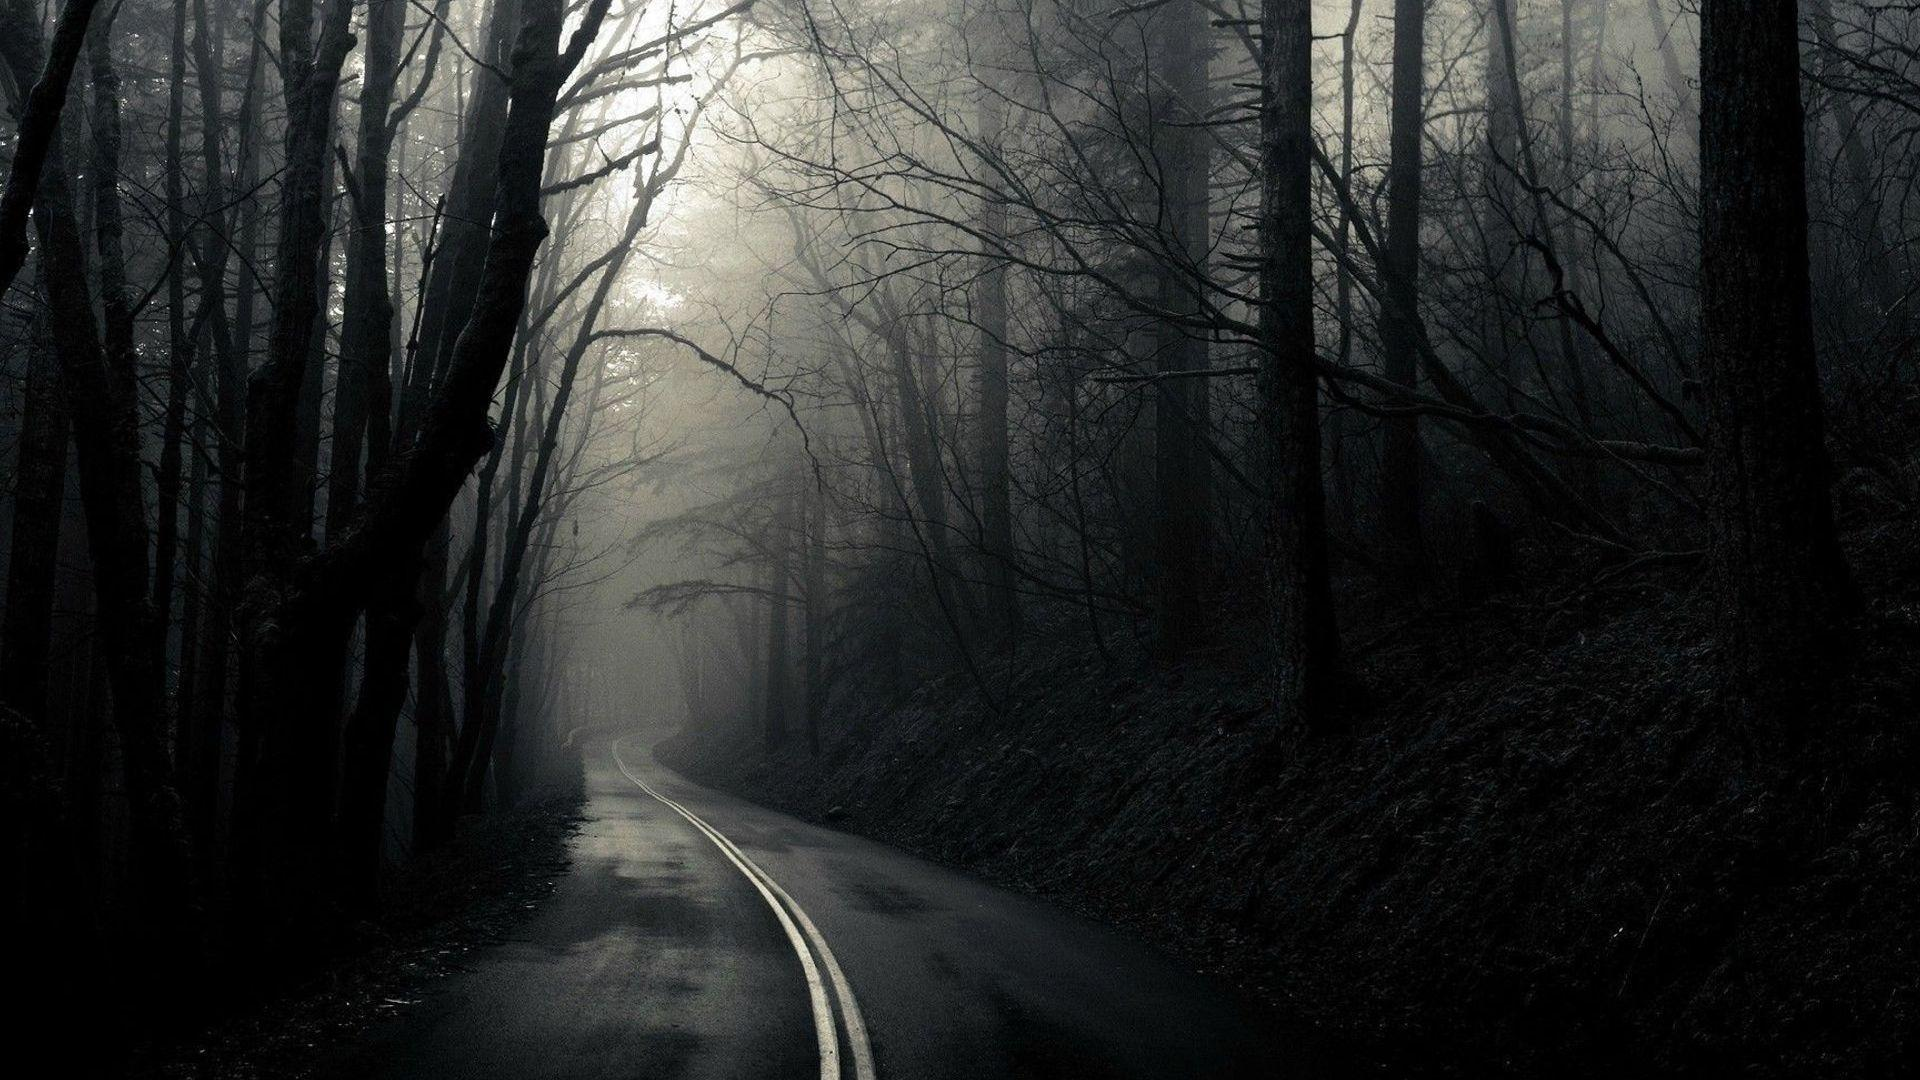 Road Through The Dark Woods Full HD Wallpaper And Background